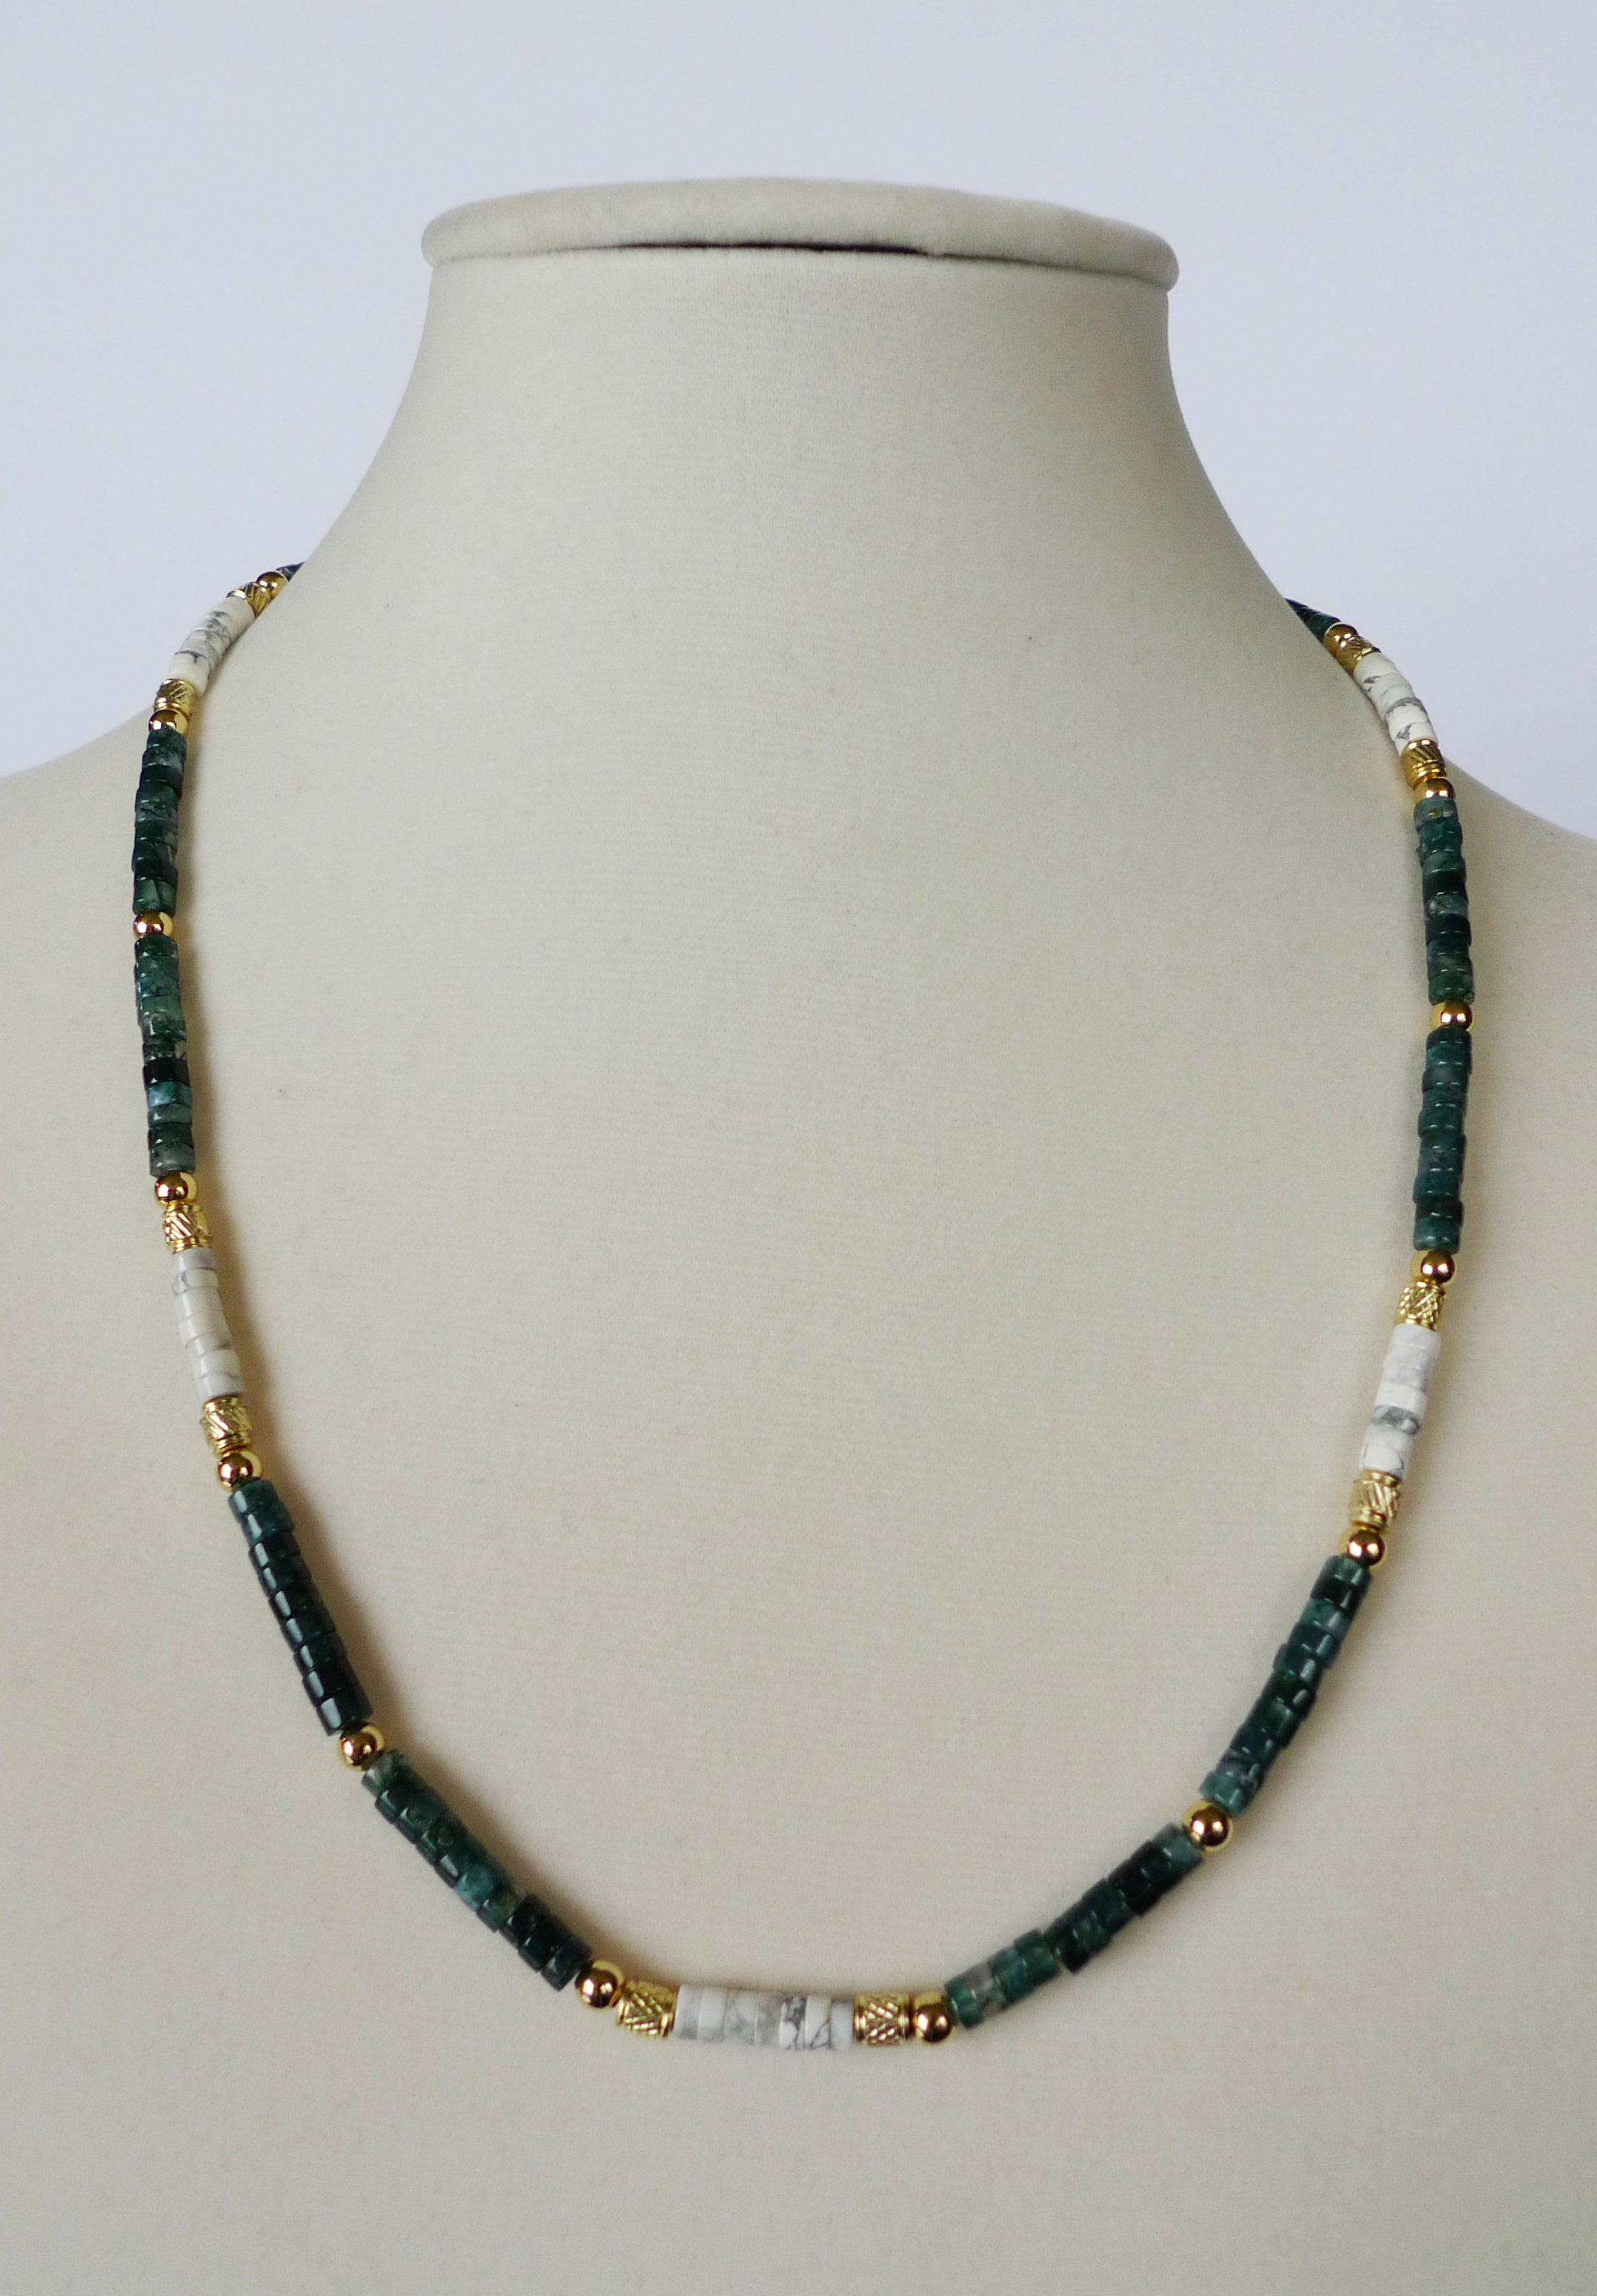 "'Algonquin' Men's 19"" Necklace"